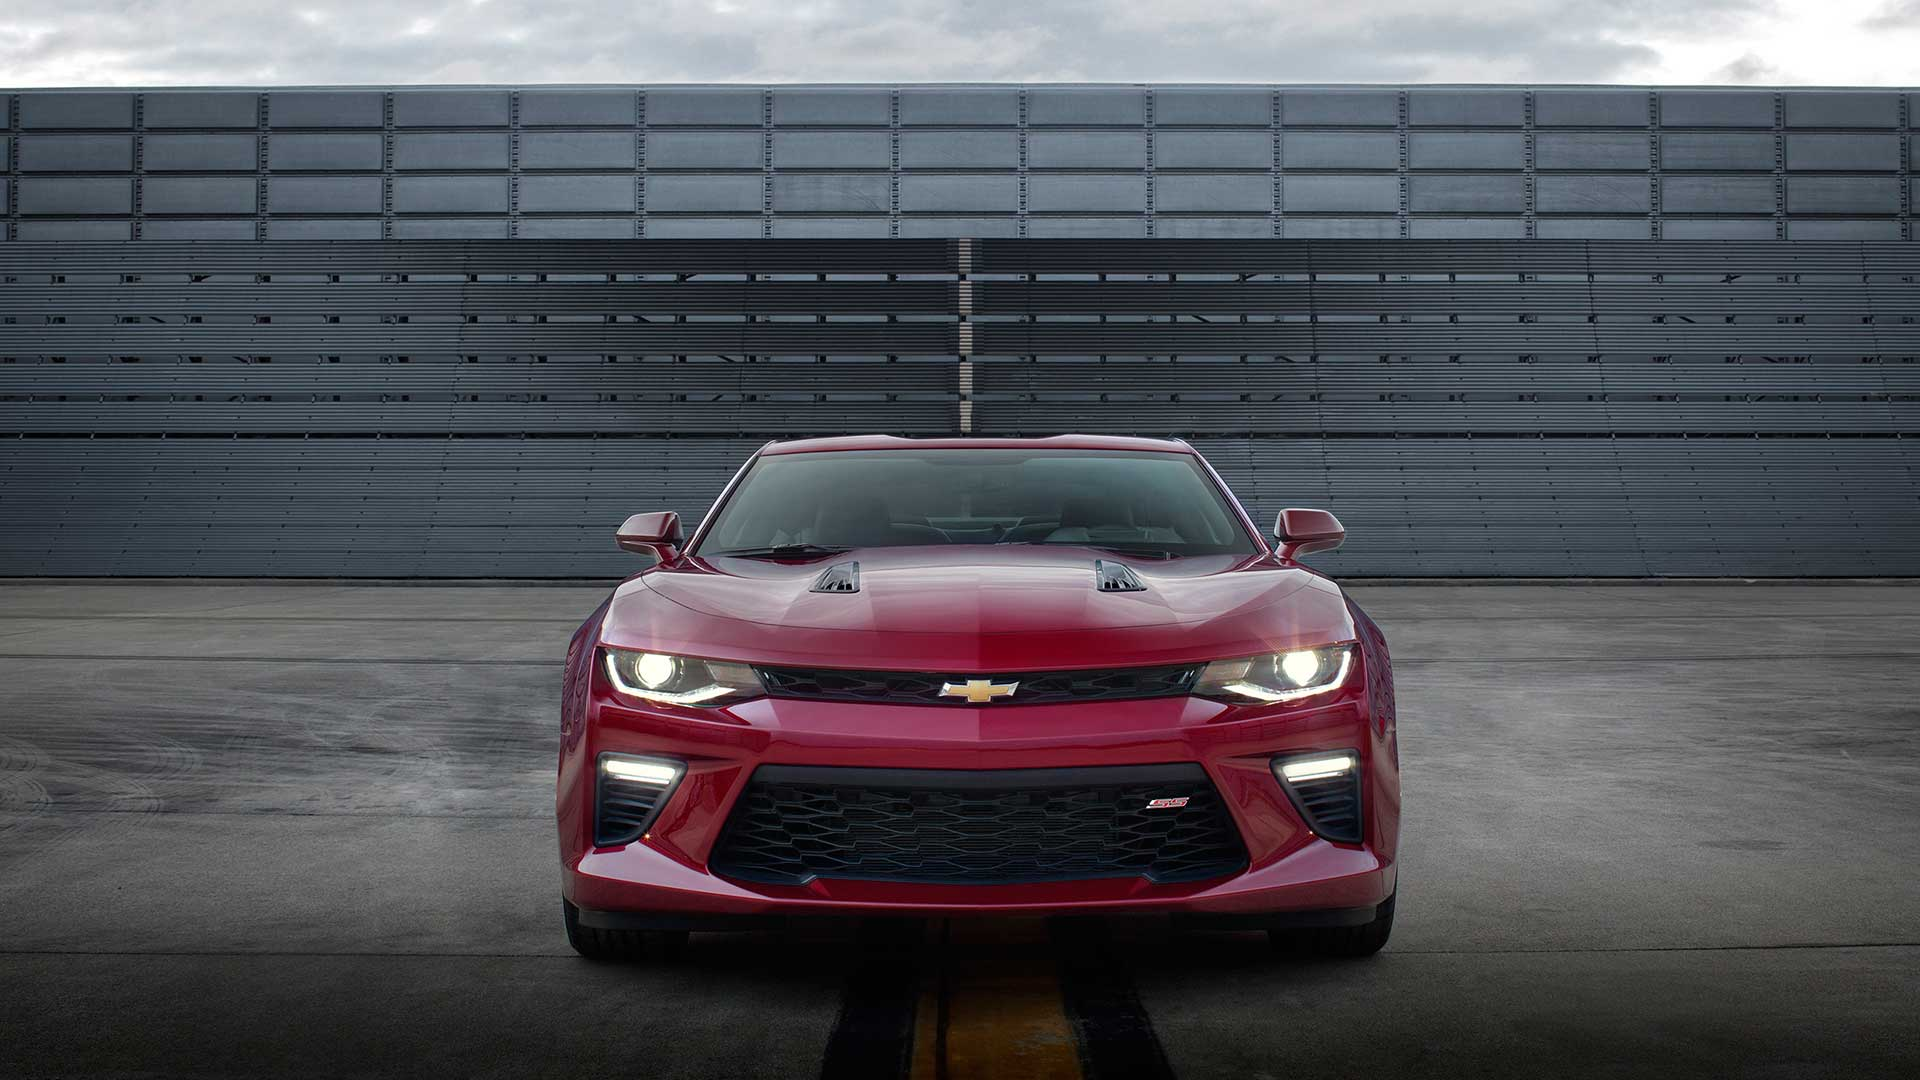 Camaro zl1 0-60 time